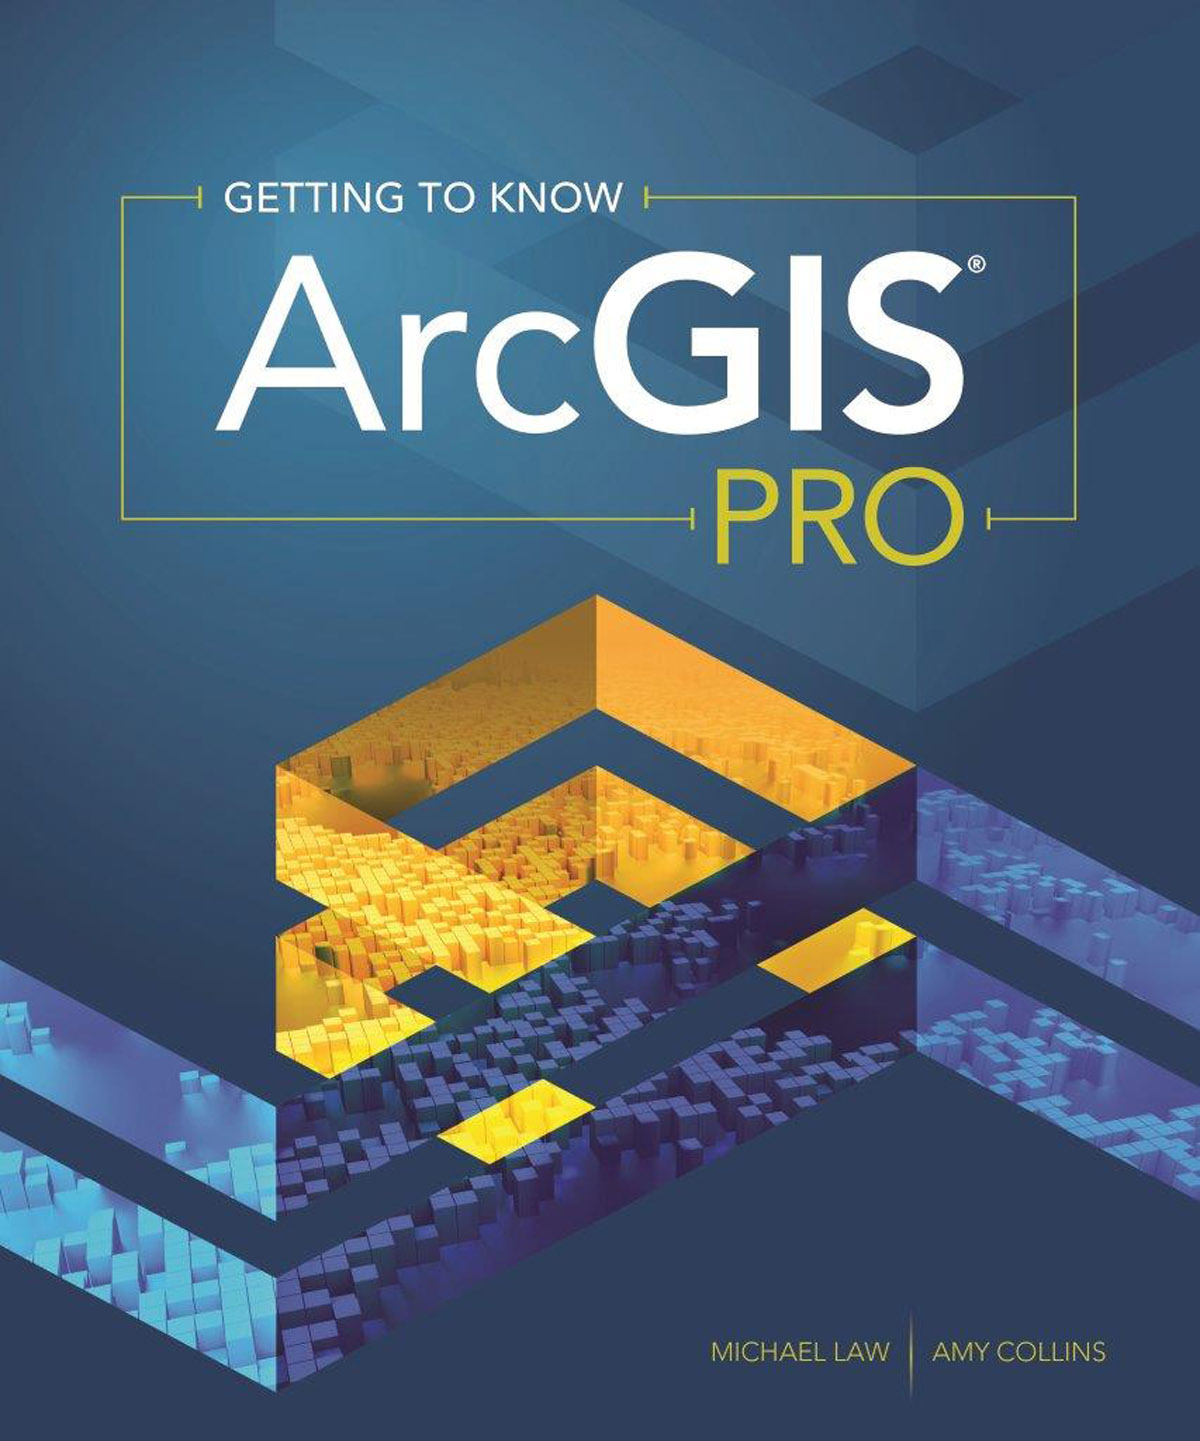 Esri Publishes The Workbook Getting To Know Arcgis Pro